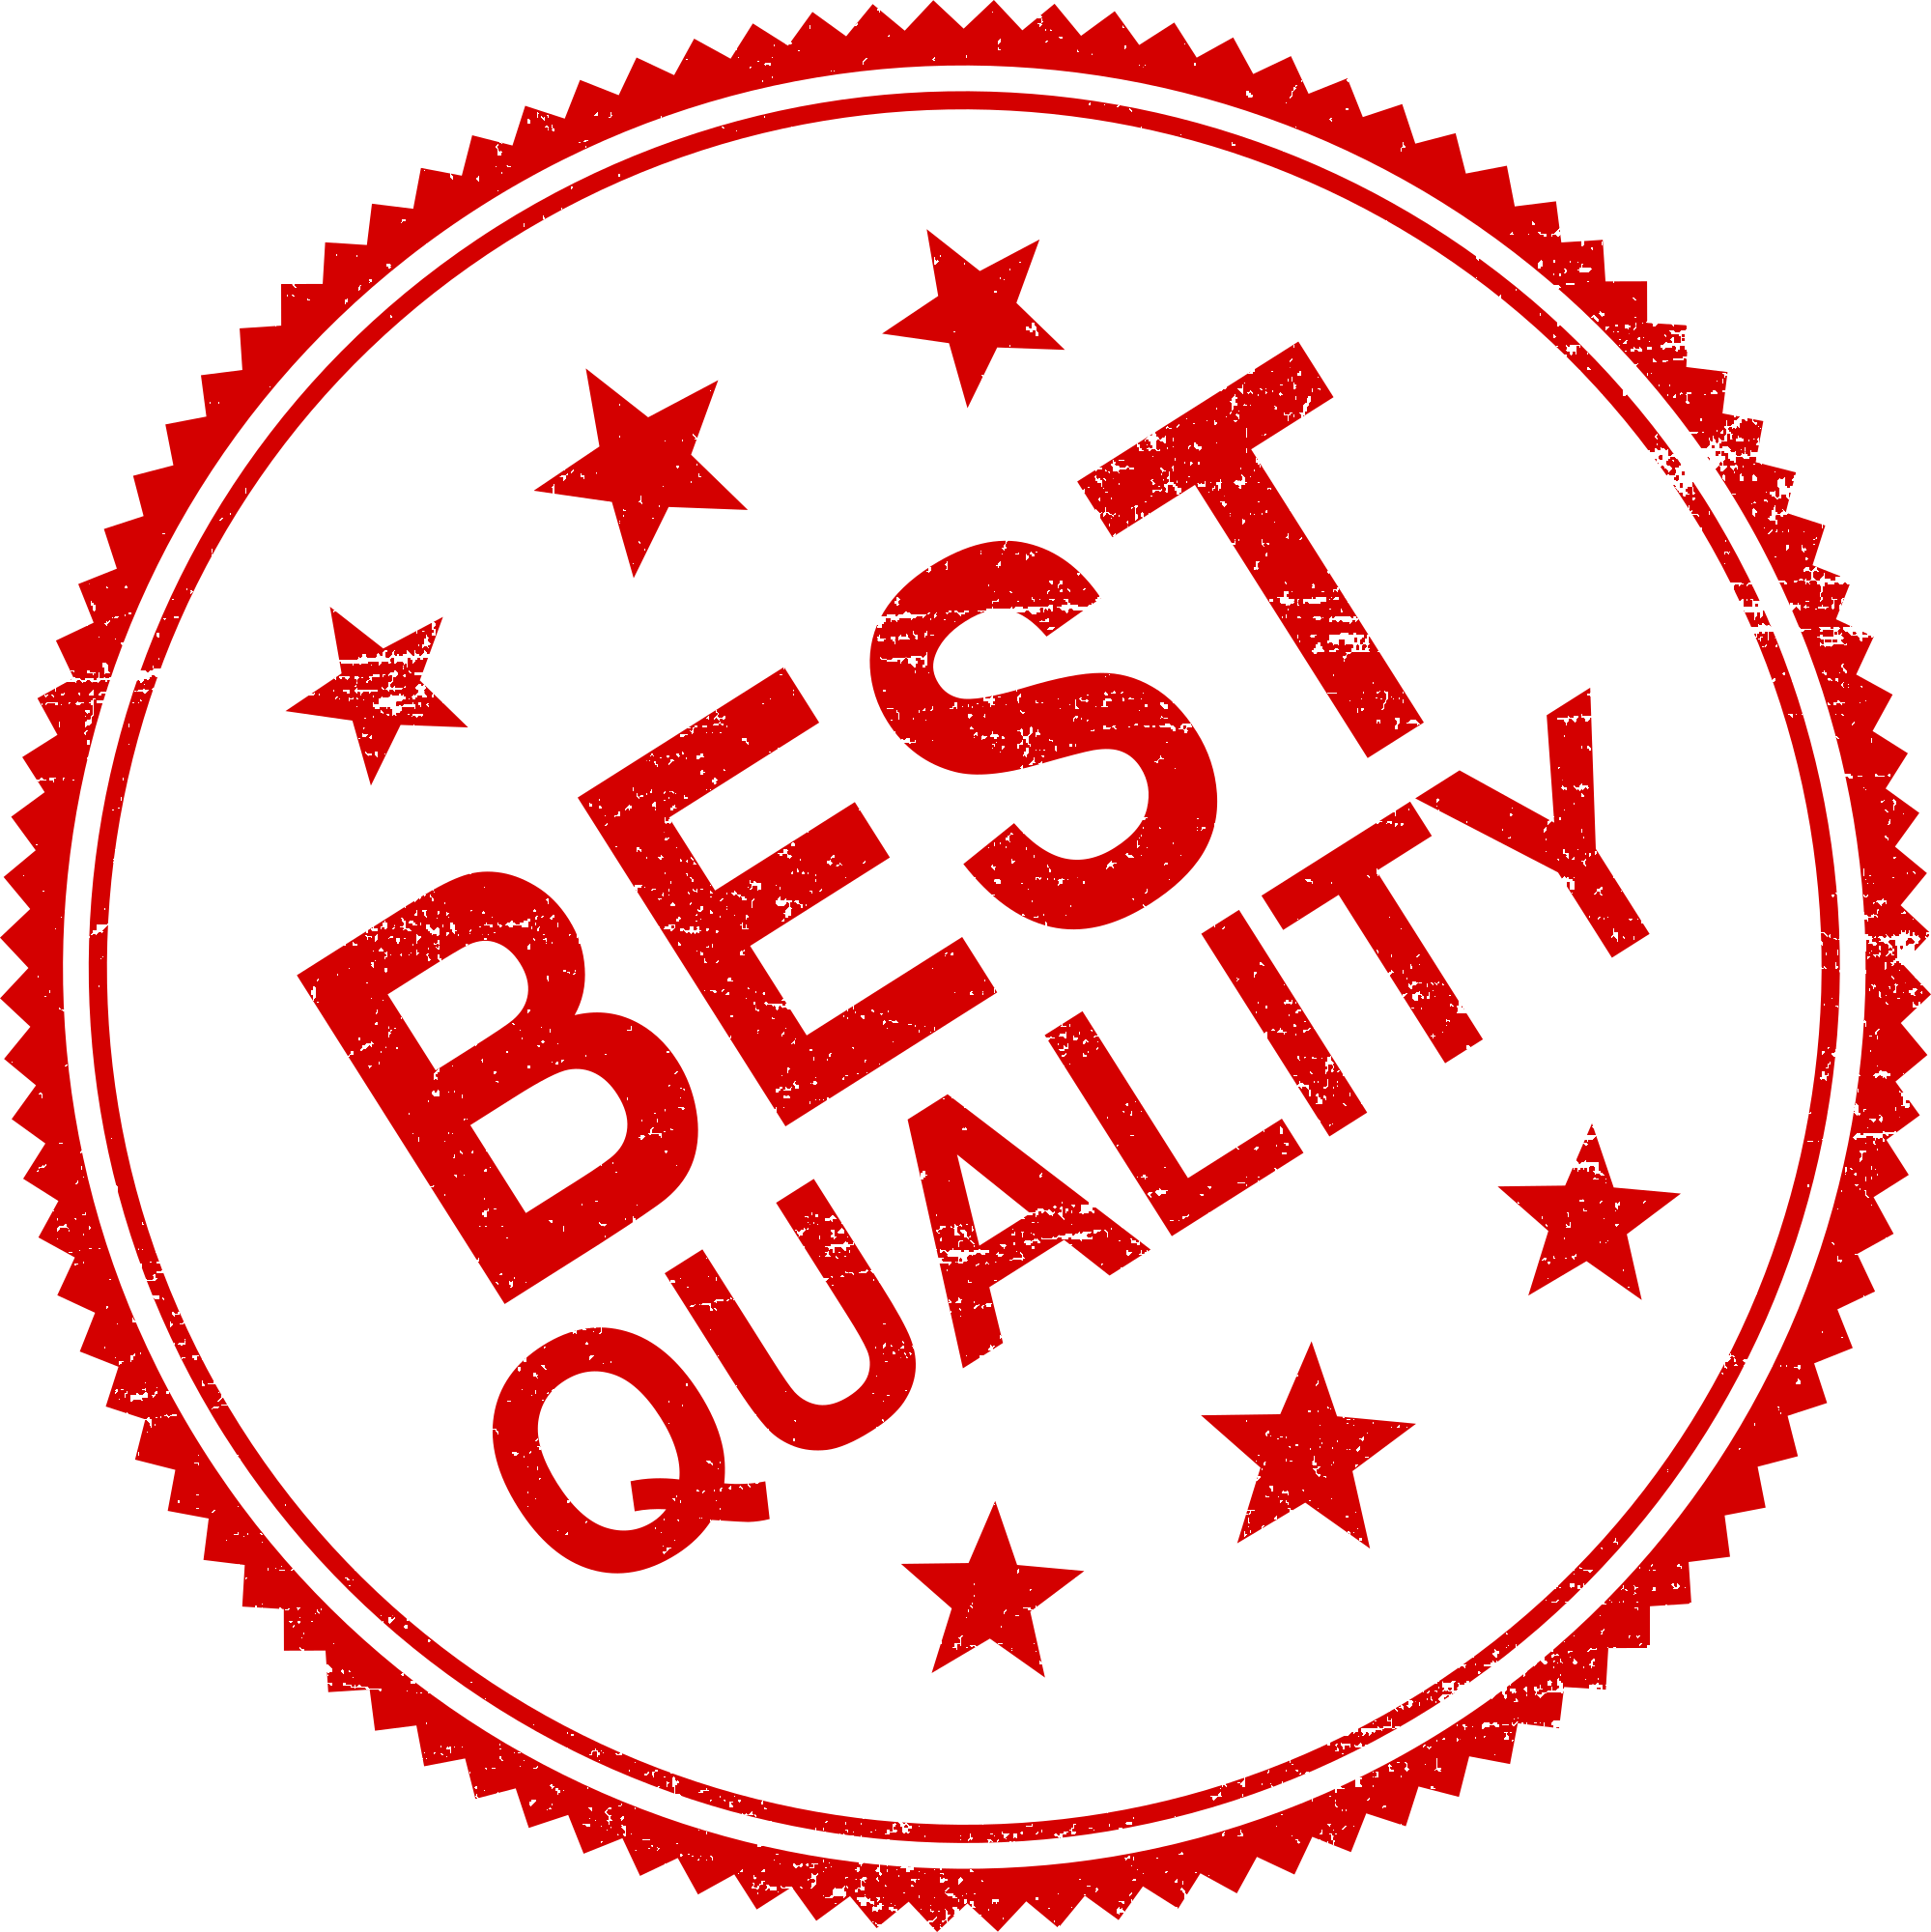 best quality stamp png transparent onlygfxm #28705